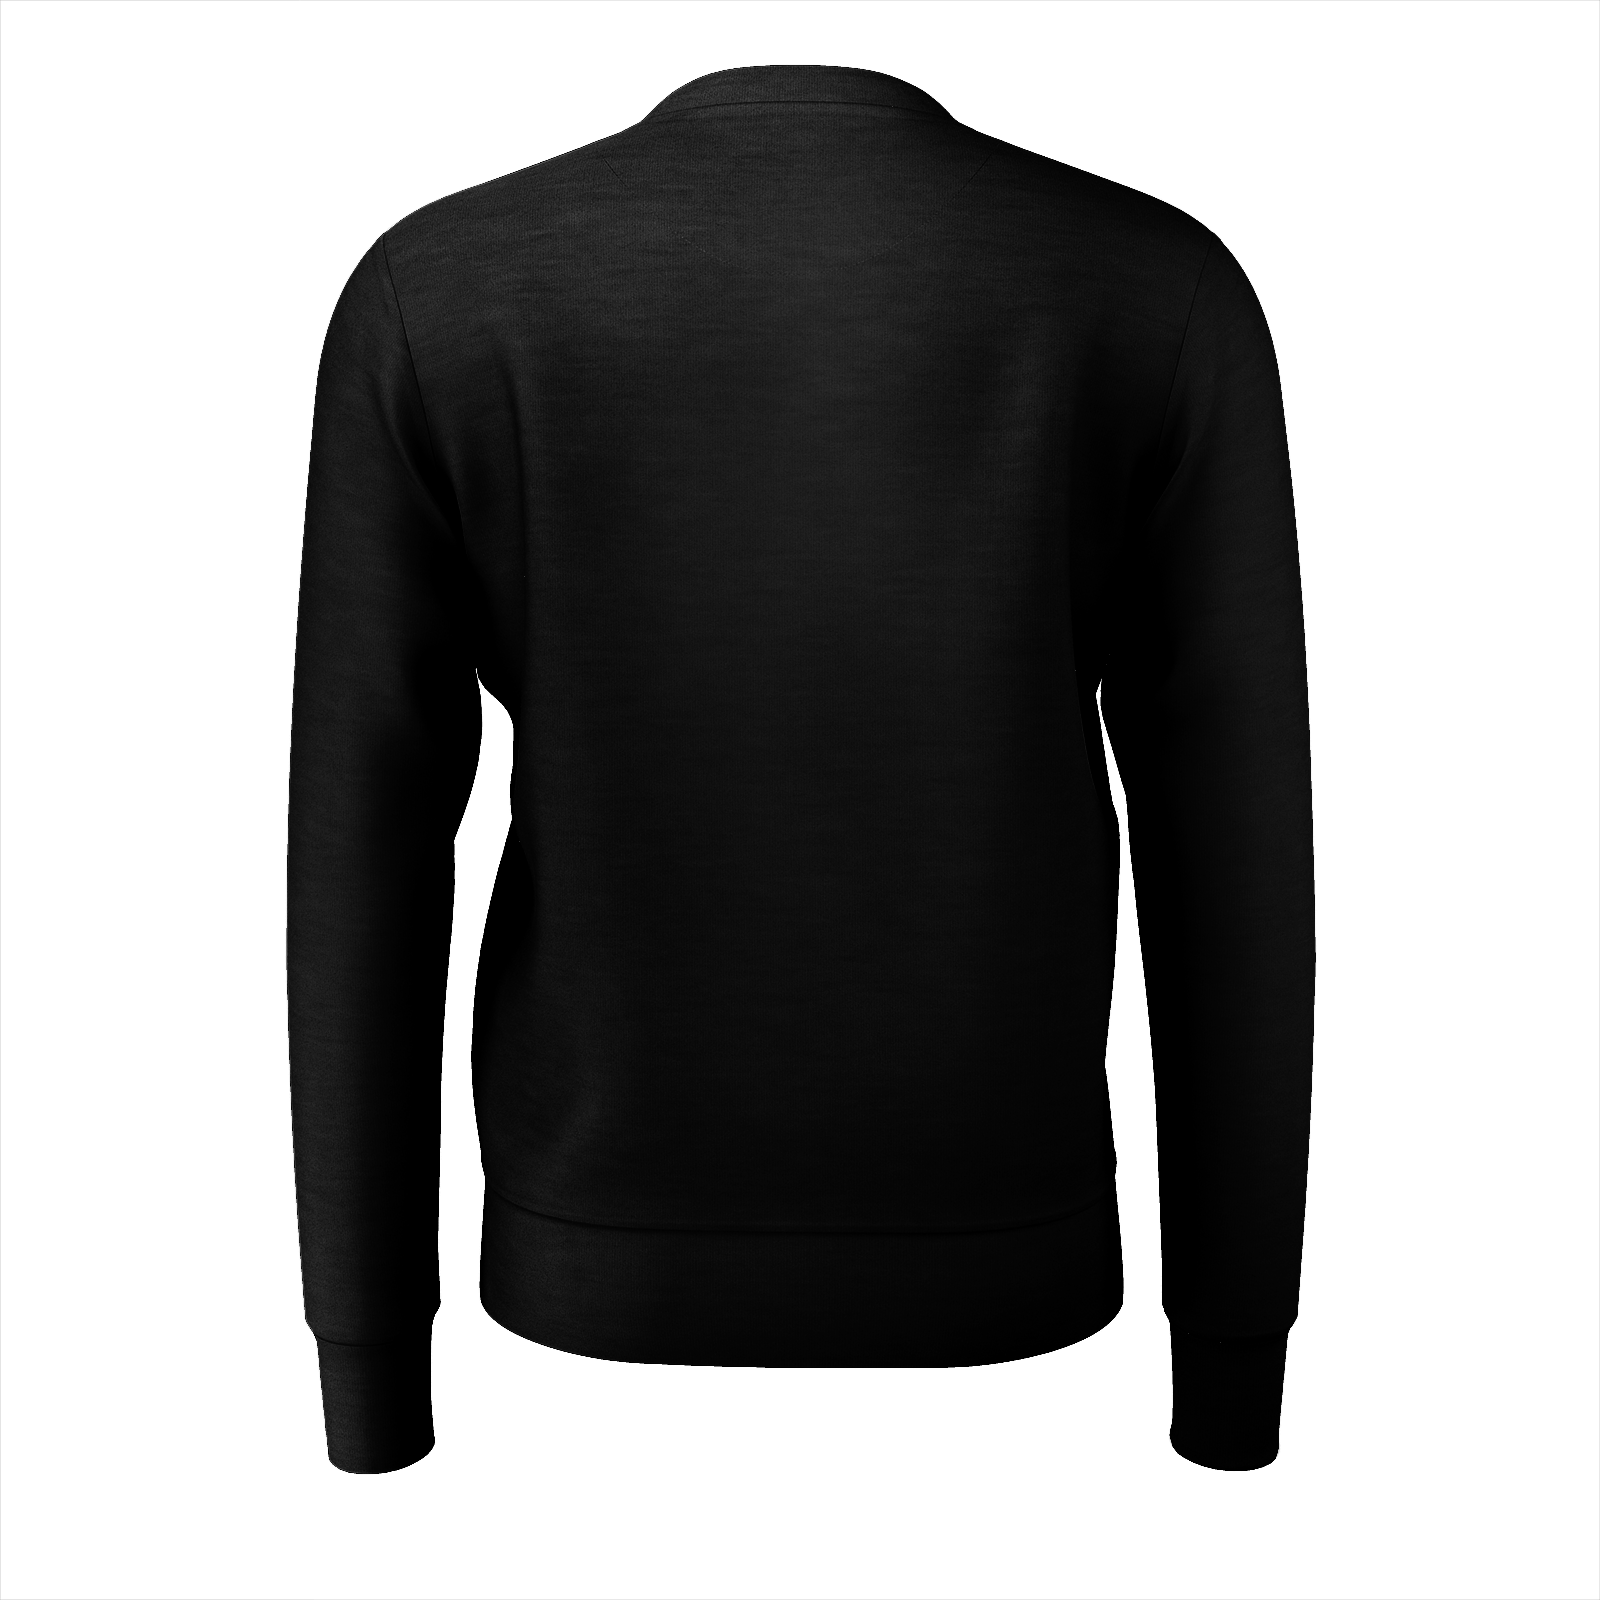 Check Collar Black Jumper